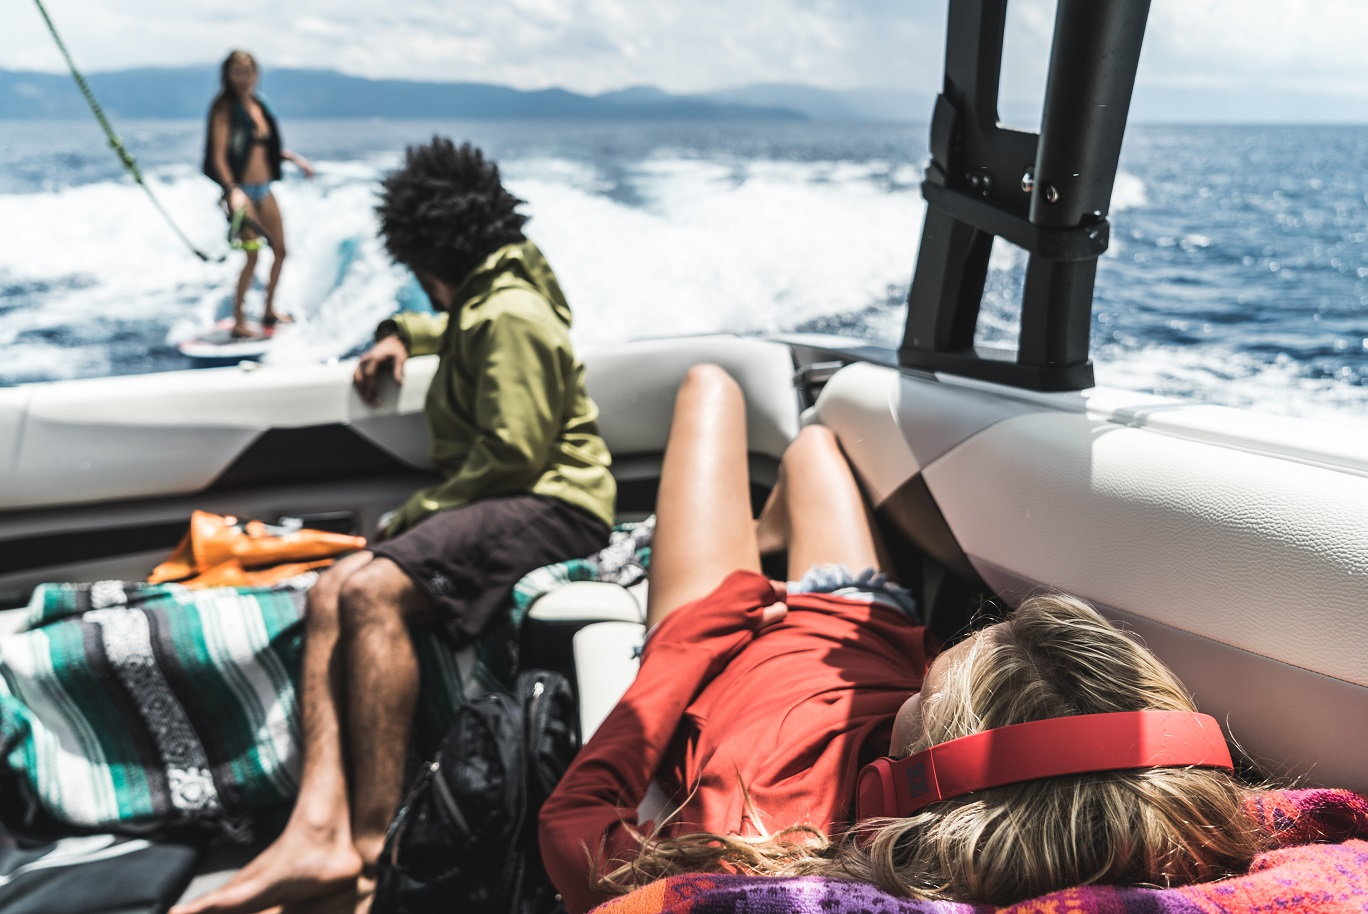 OT1900-R-Cabos-Boating-Laying-Lifestyle